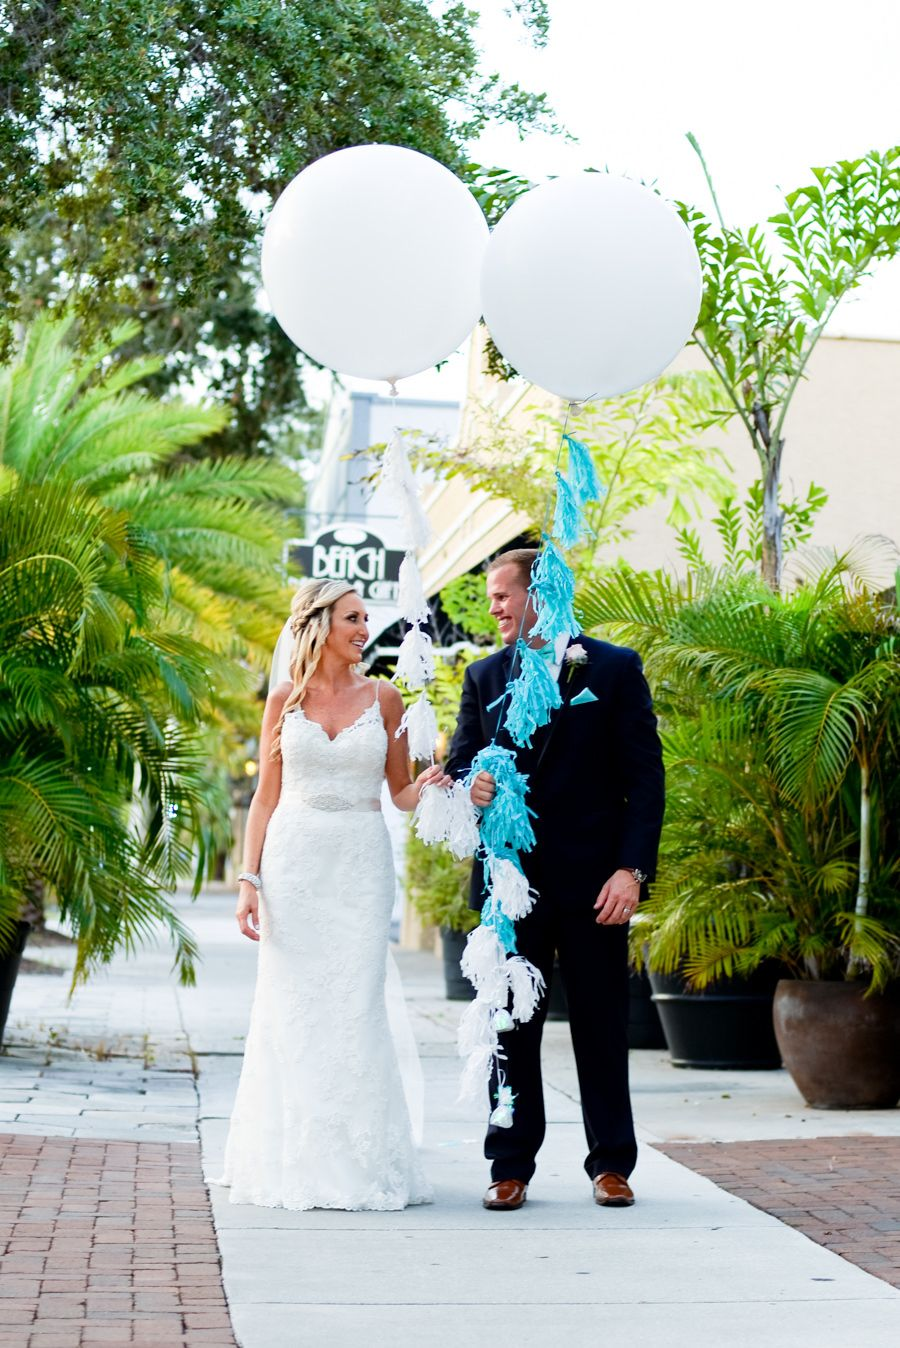 Downtown St. Pete Bride and Groom Wedding Portrait with Large, Oversized Balloons